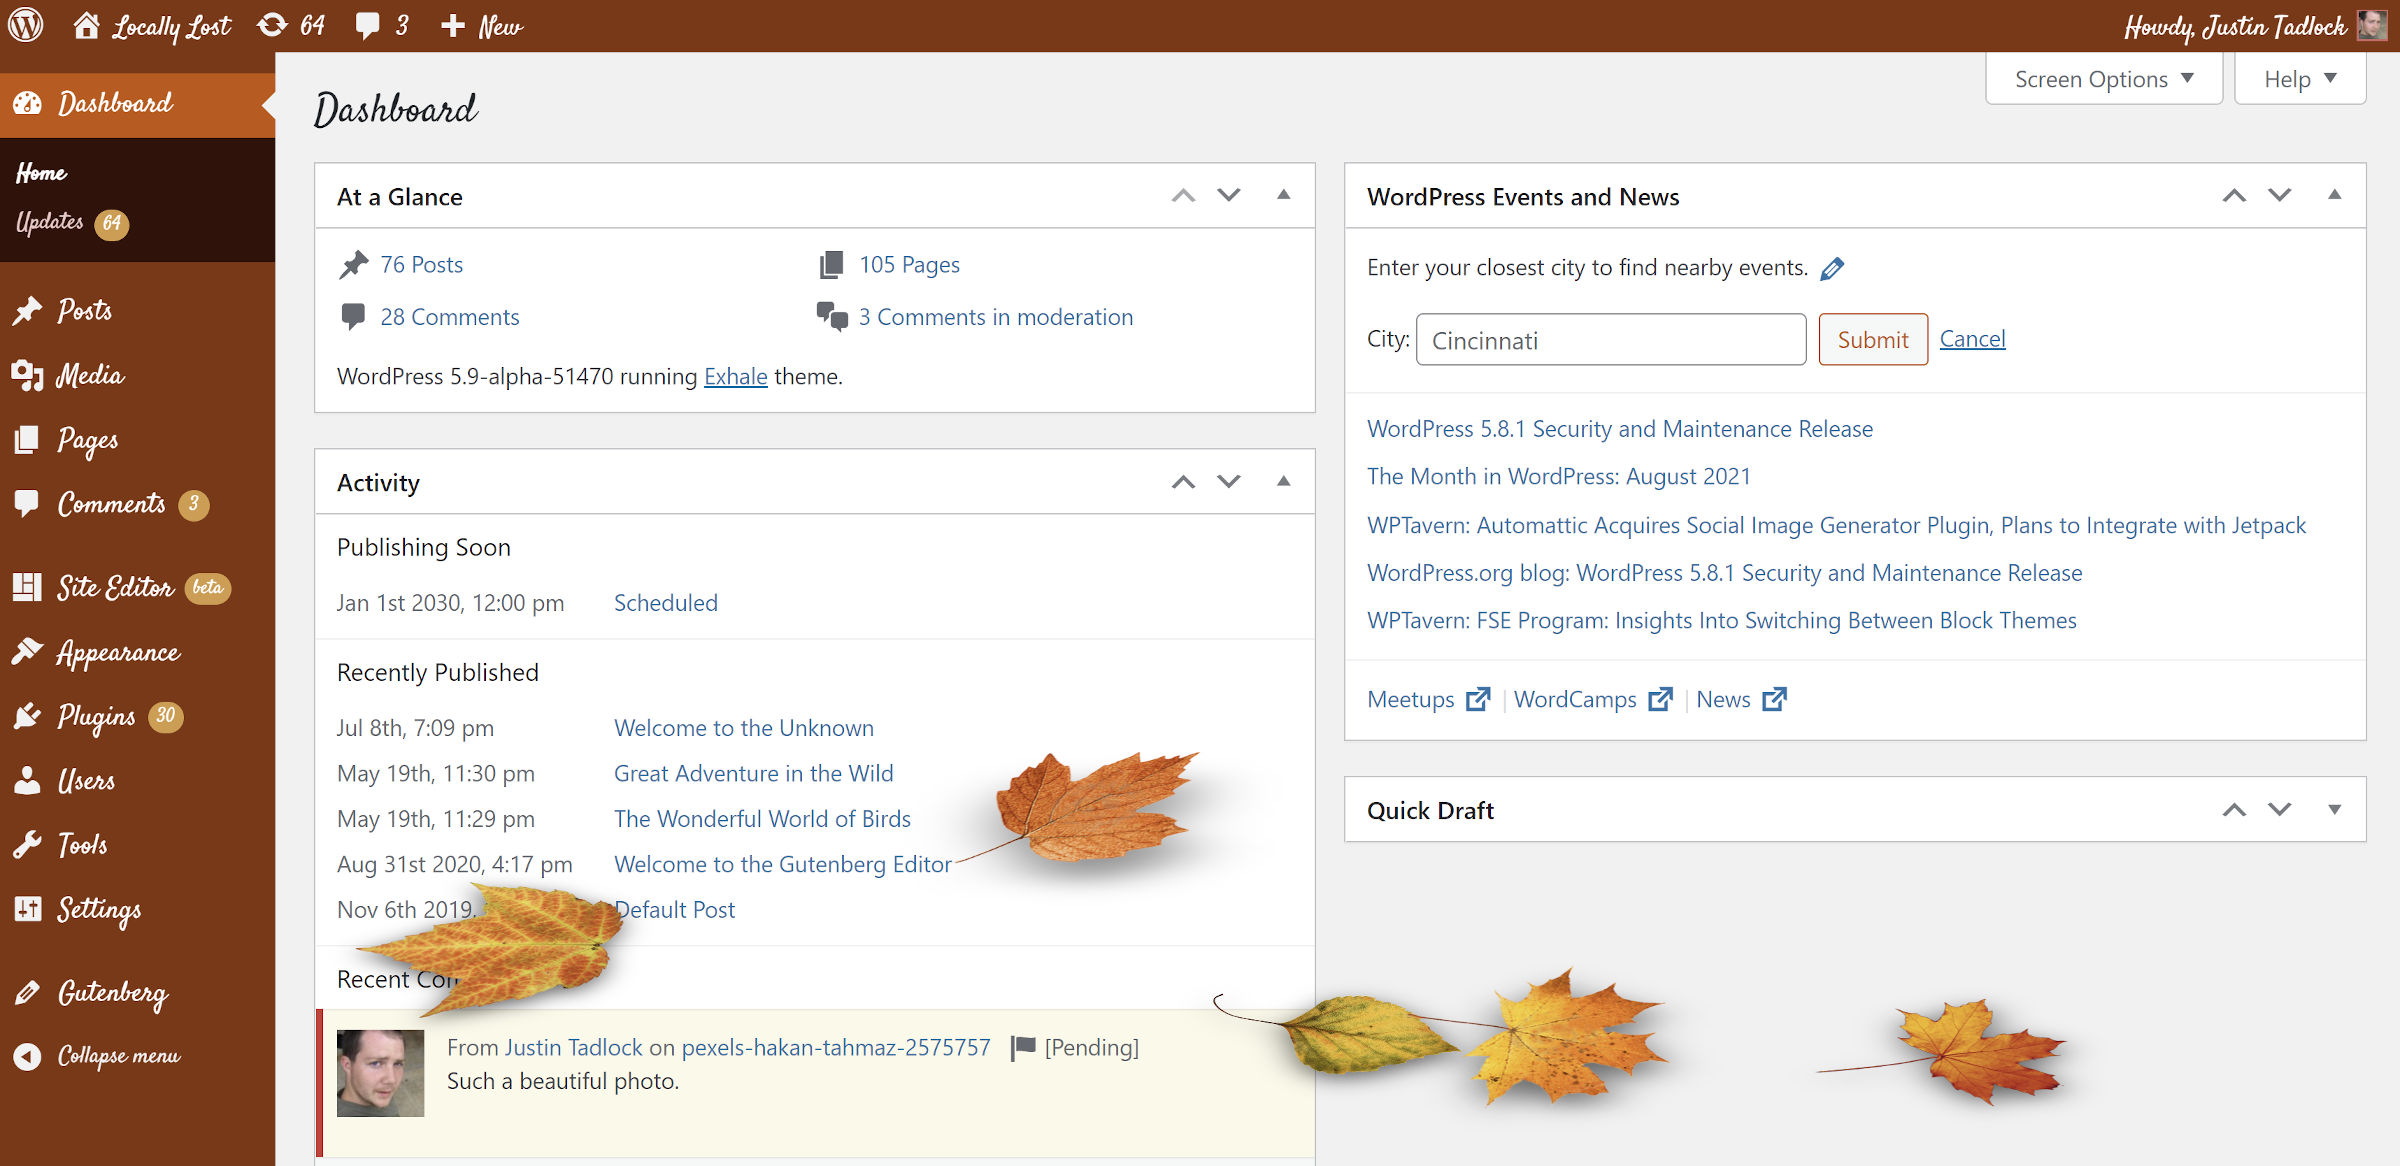 Color scheme of the WordPress dashboard screen when using a pumpkin-spice inspired palette.